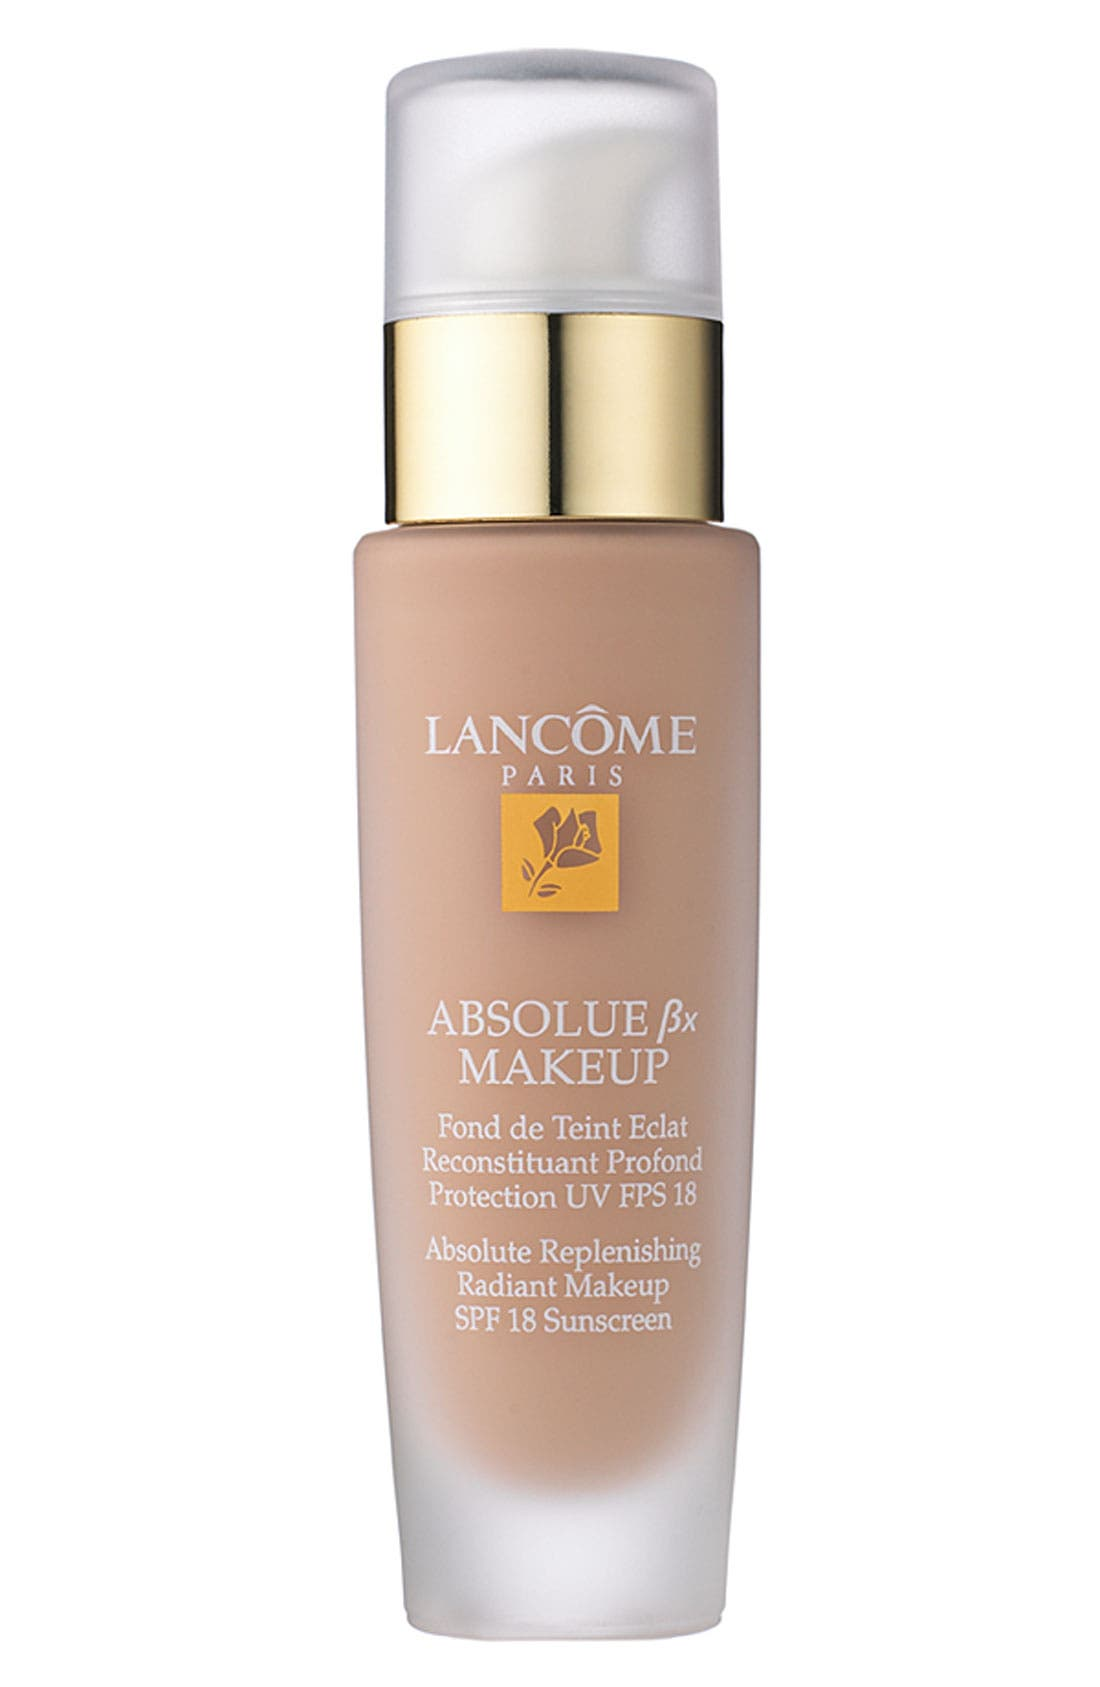 LANCÔME, Absolue Replenishing Radiant Makeup SPF 18 Sunscreen, Main thumbnail 1, color, ABSOLUTE ALMOND 310 (C)